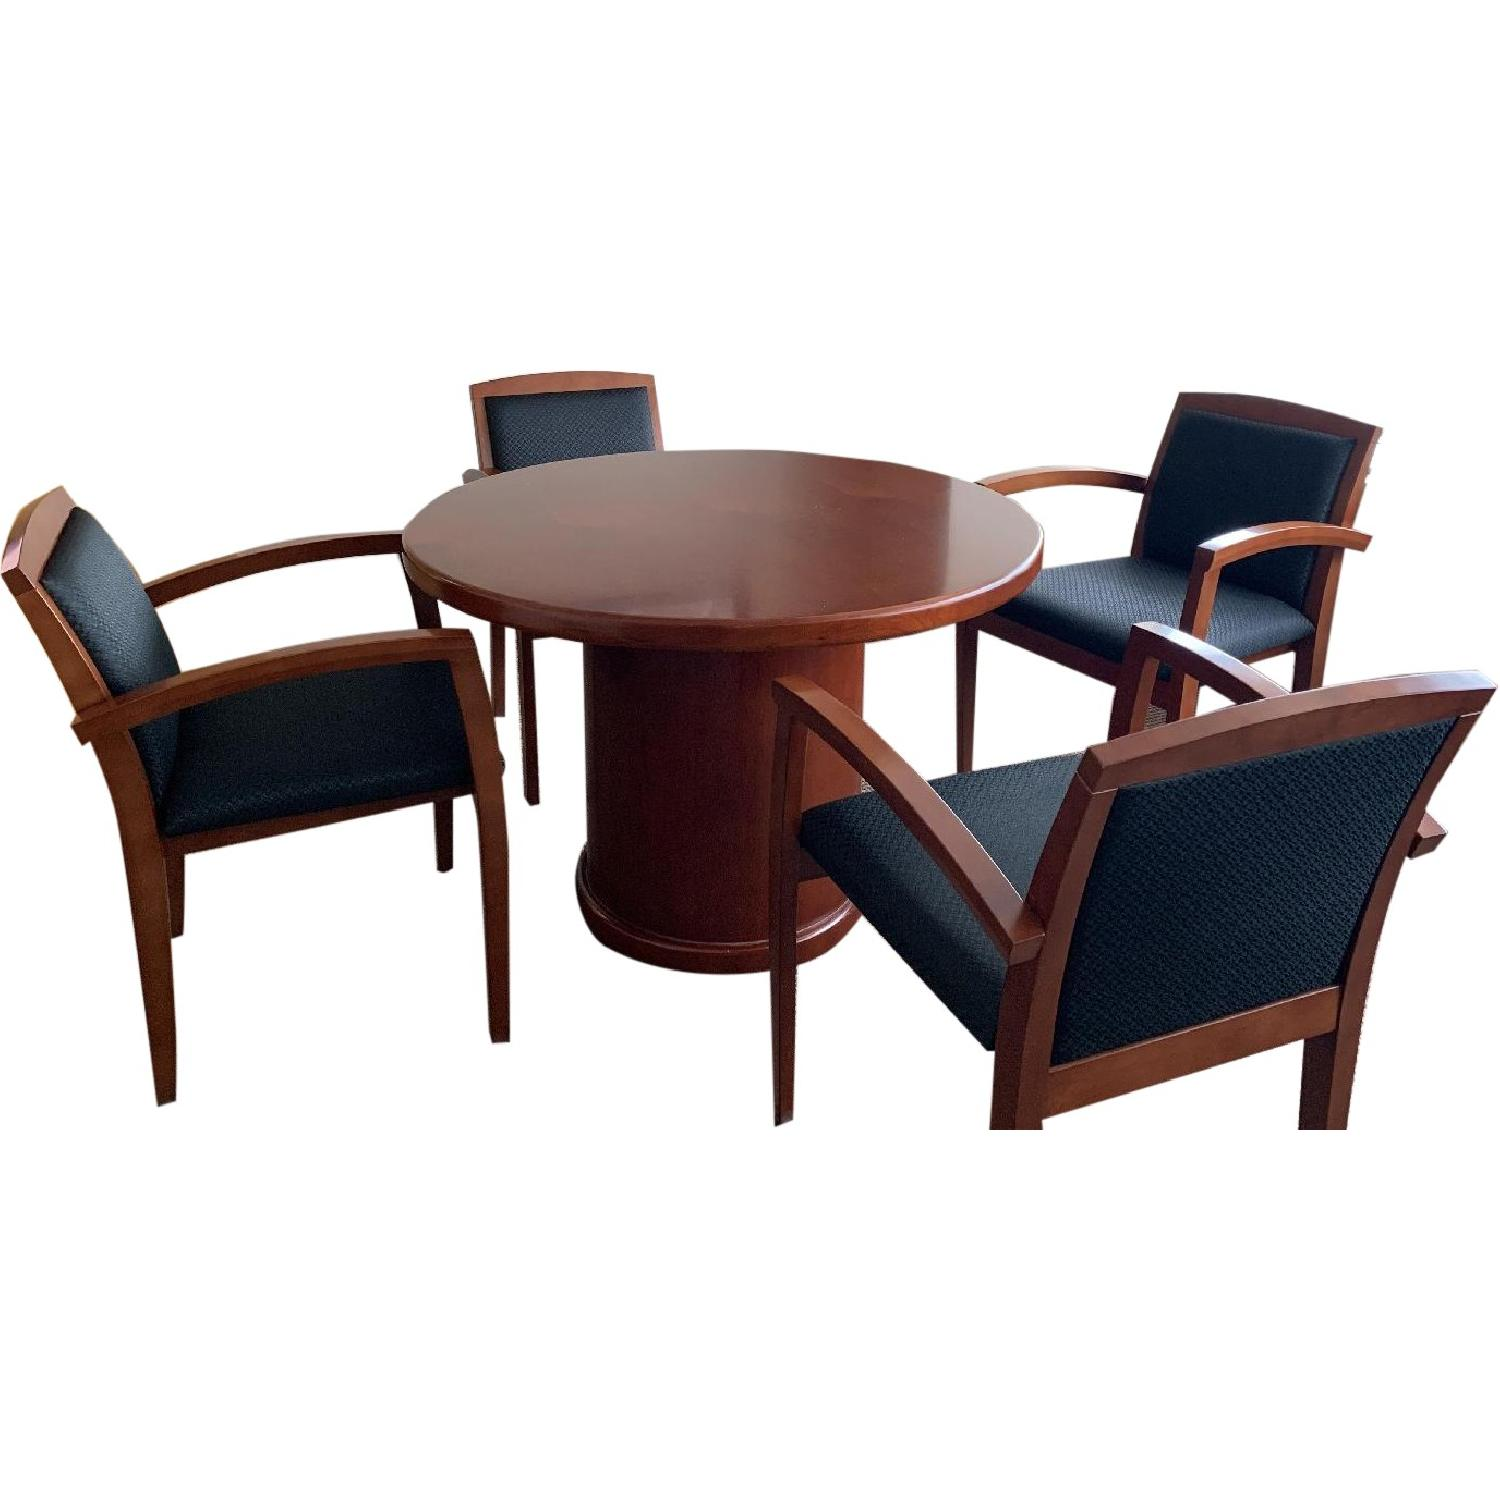 Wood Bistro Table w/ 4 Chairs - image-0